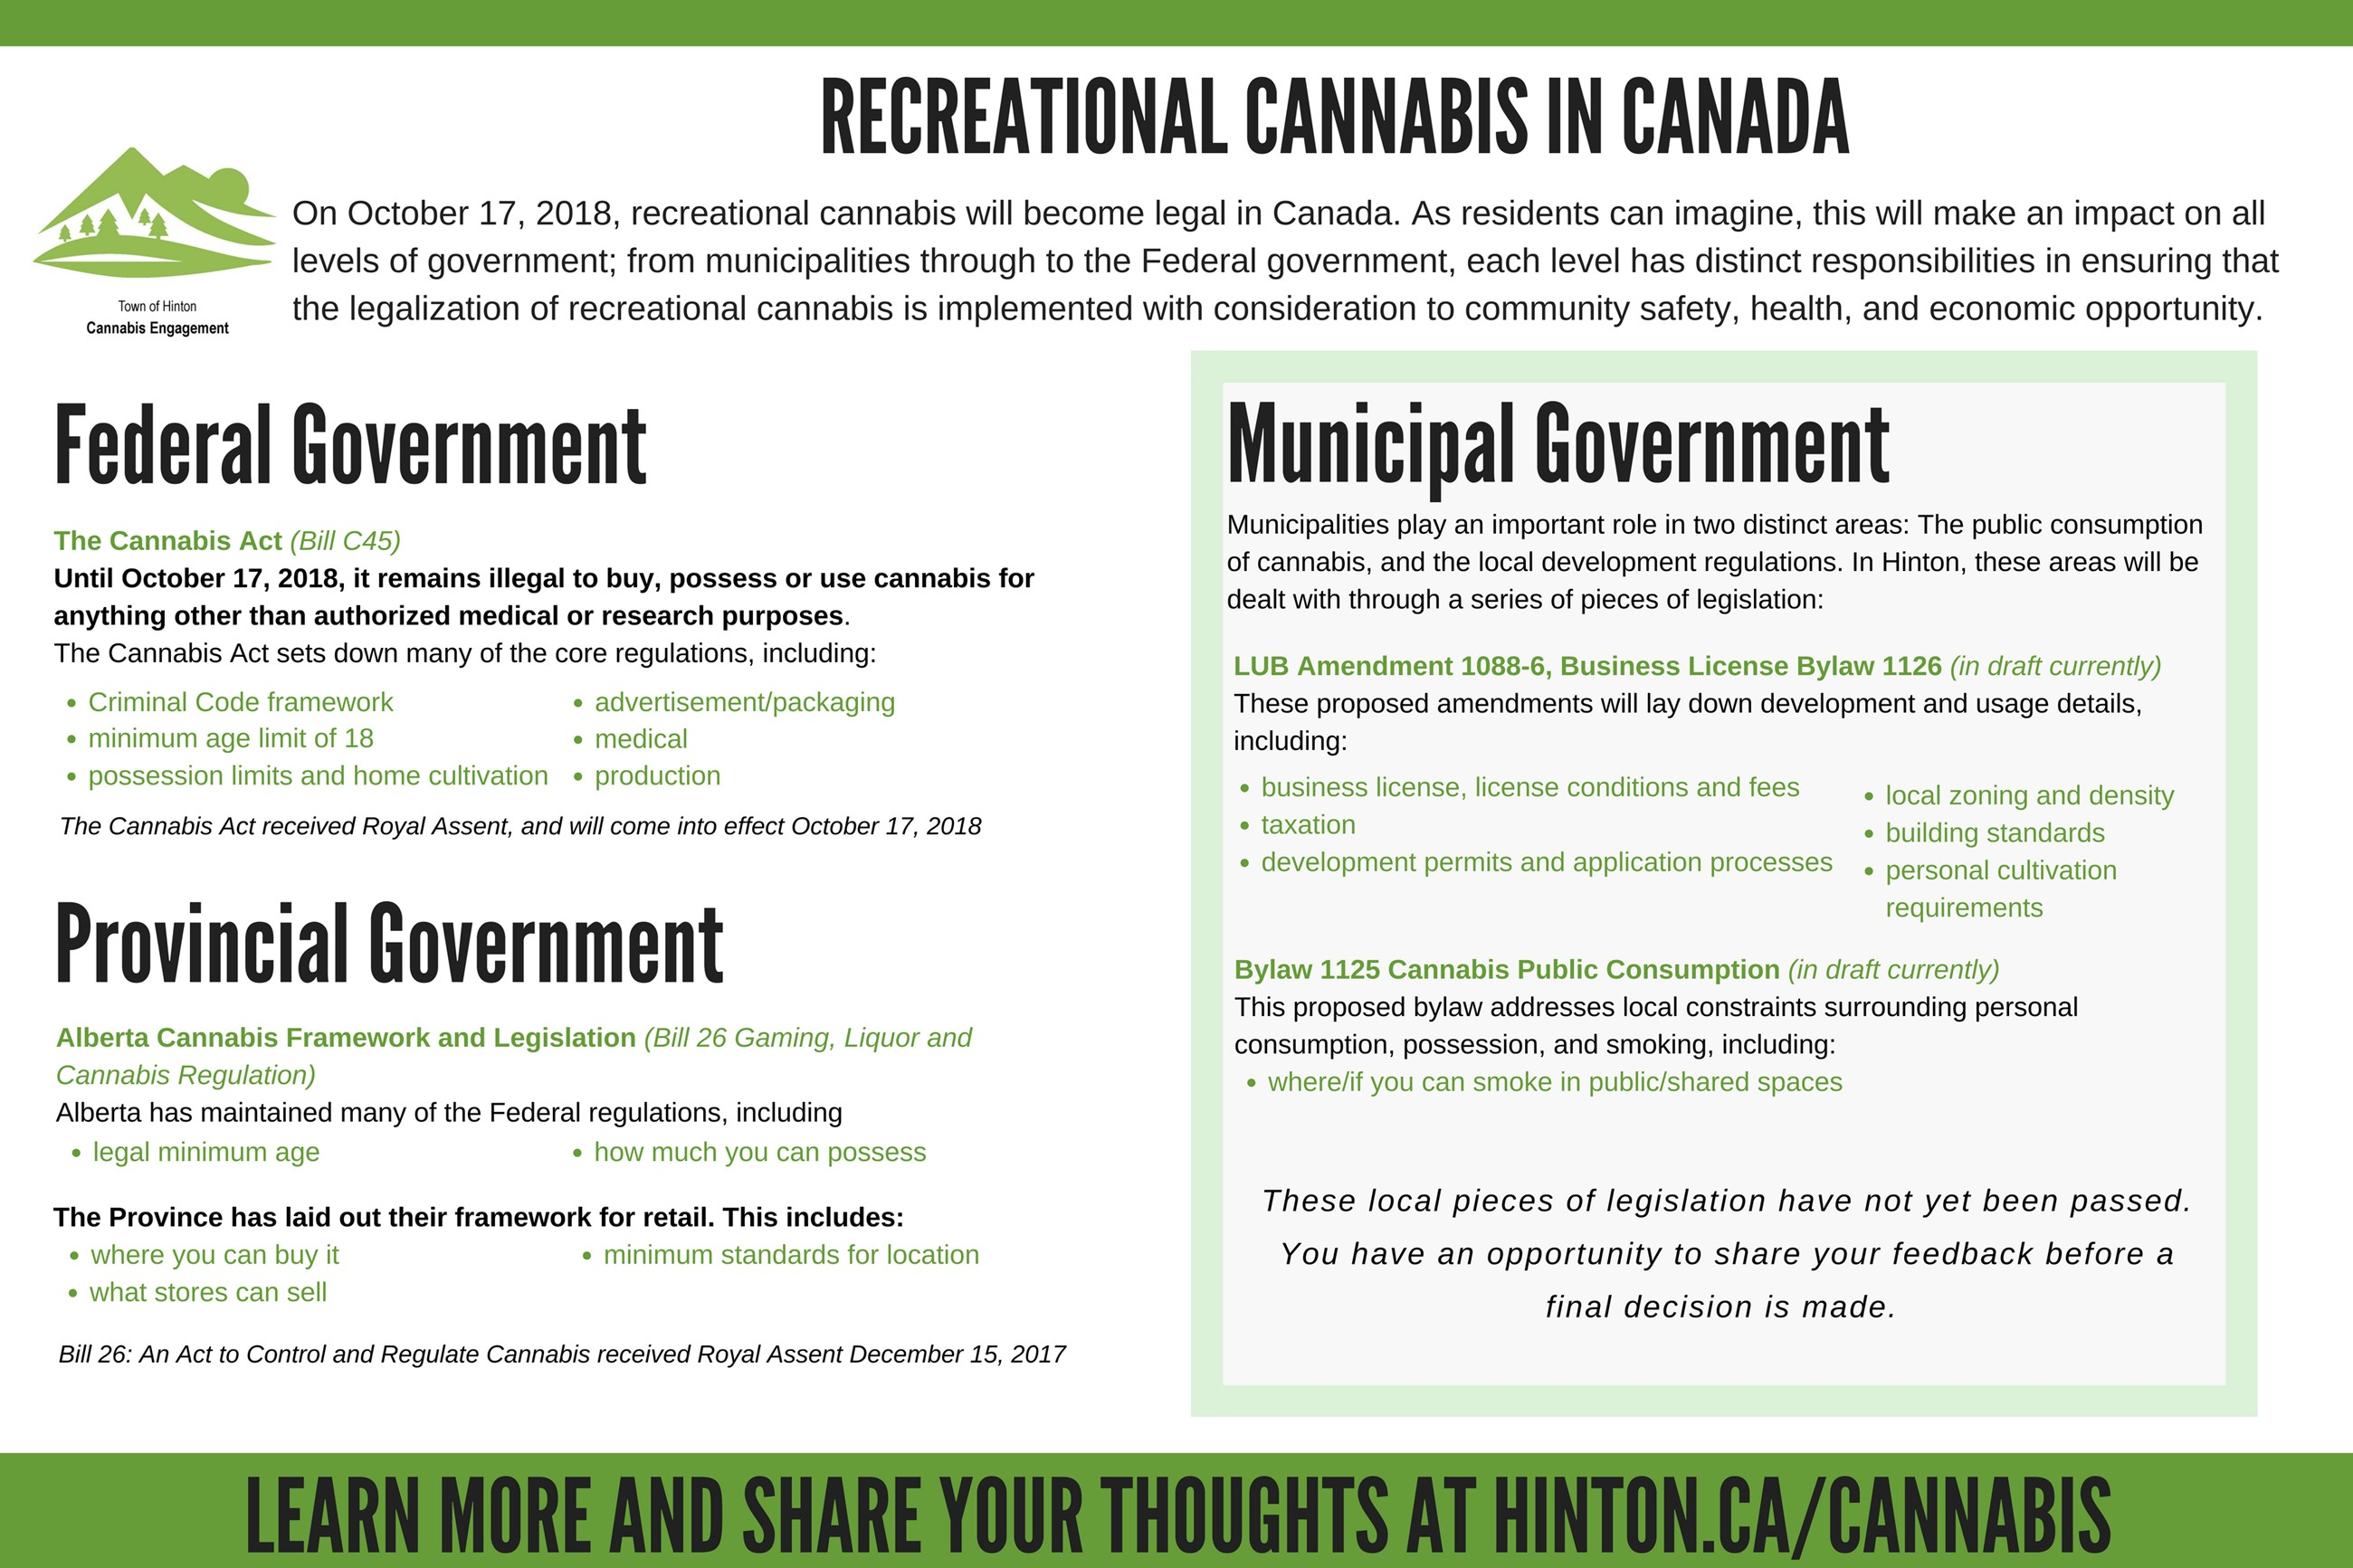 Contains an overview of Cannabis related legislation in effect in Canada